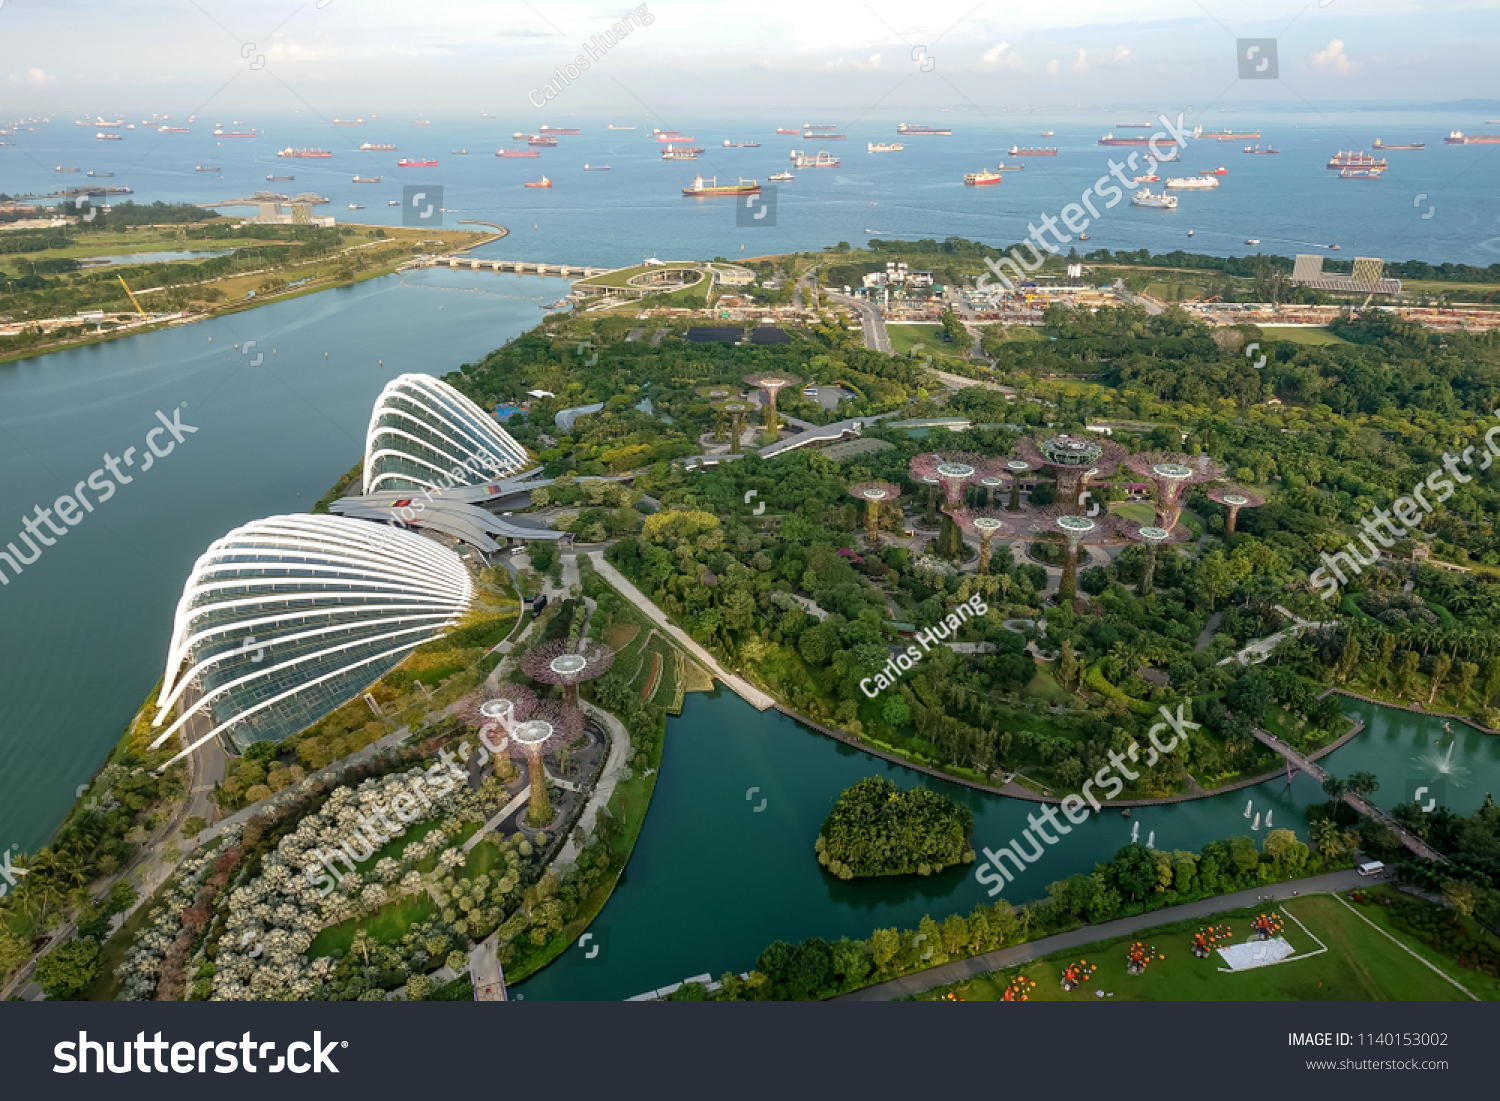 SINGAPORE,SINGAPORE - AUG. 27 : Singapore aerial view on Auguest 27,2017 in Singapore,Singapore. It is a global commerce, finance and transport hub and has a diversity of languages,religions,cultures. #1140153002